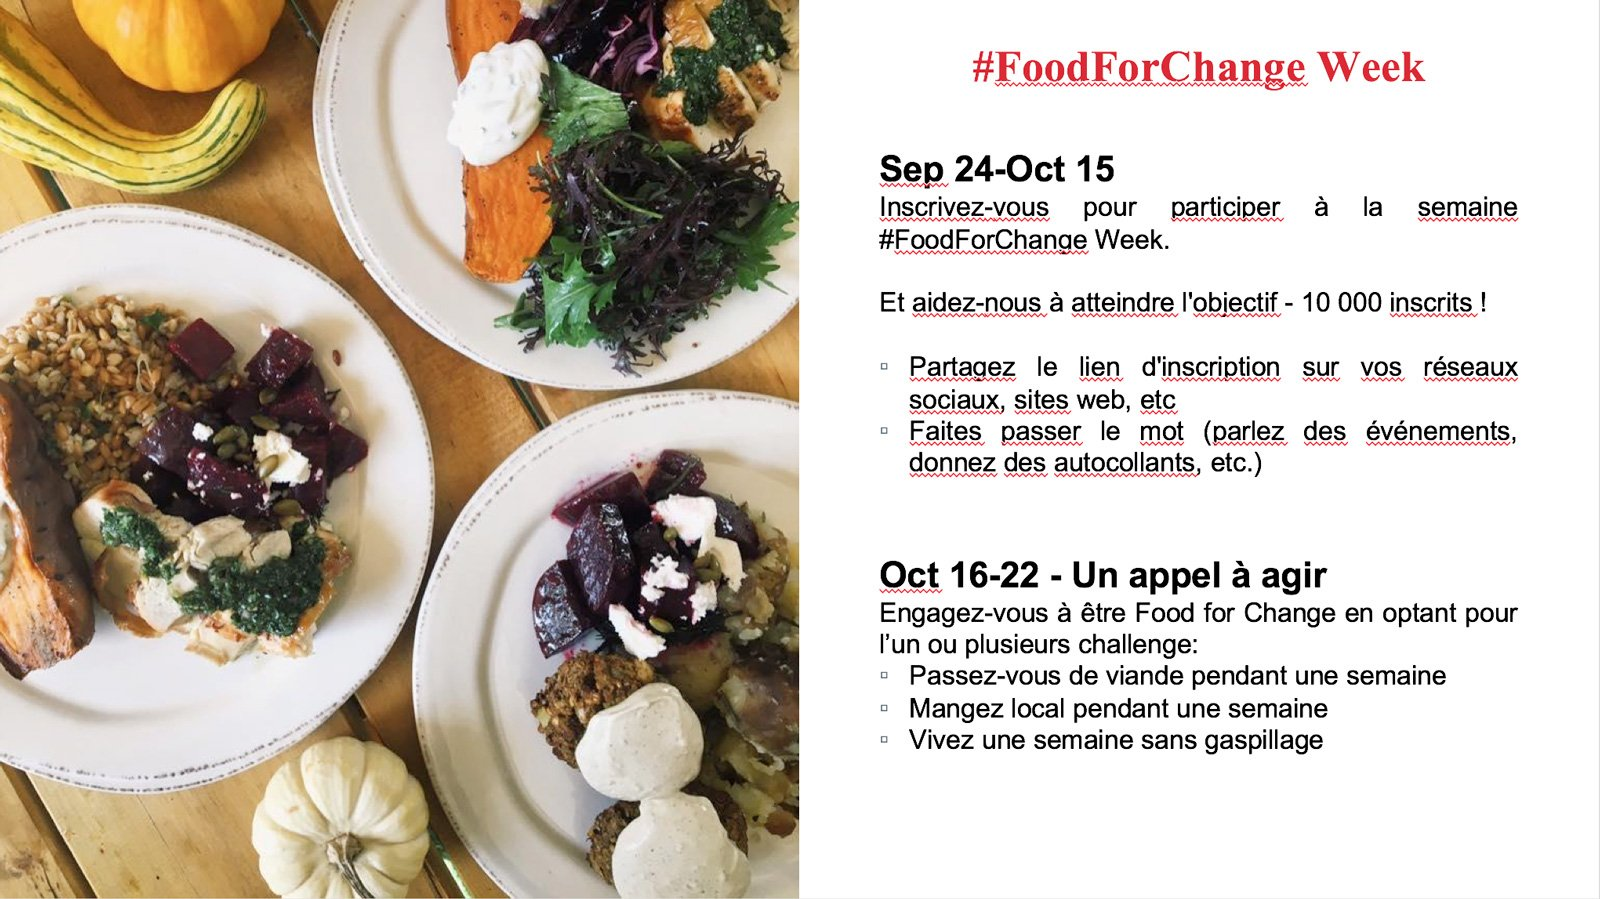 slowfood-campagne-slow-food-climat-alimentation-food-for-change-synthese-3-1600x899